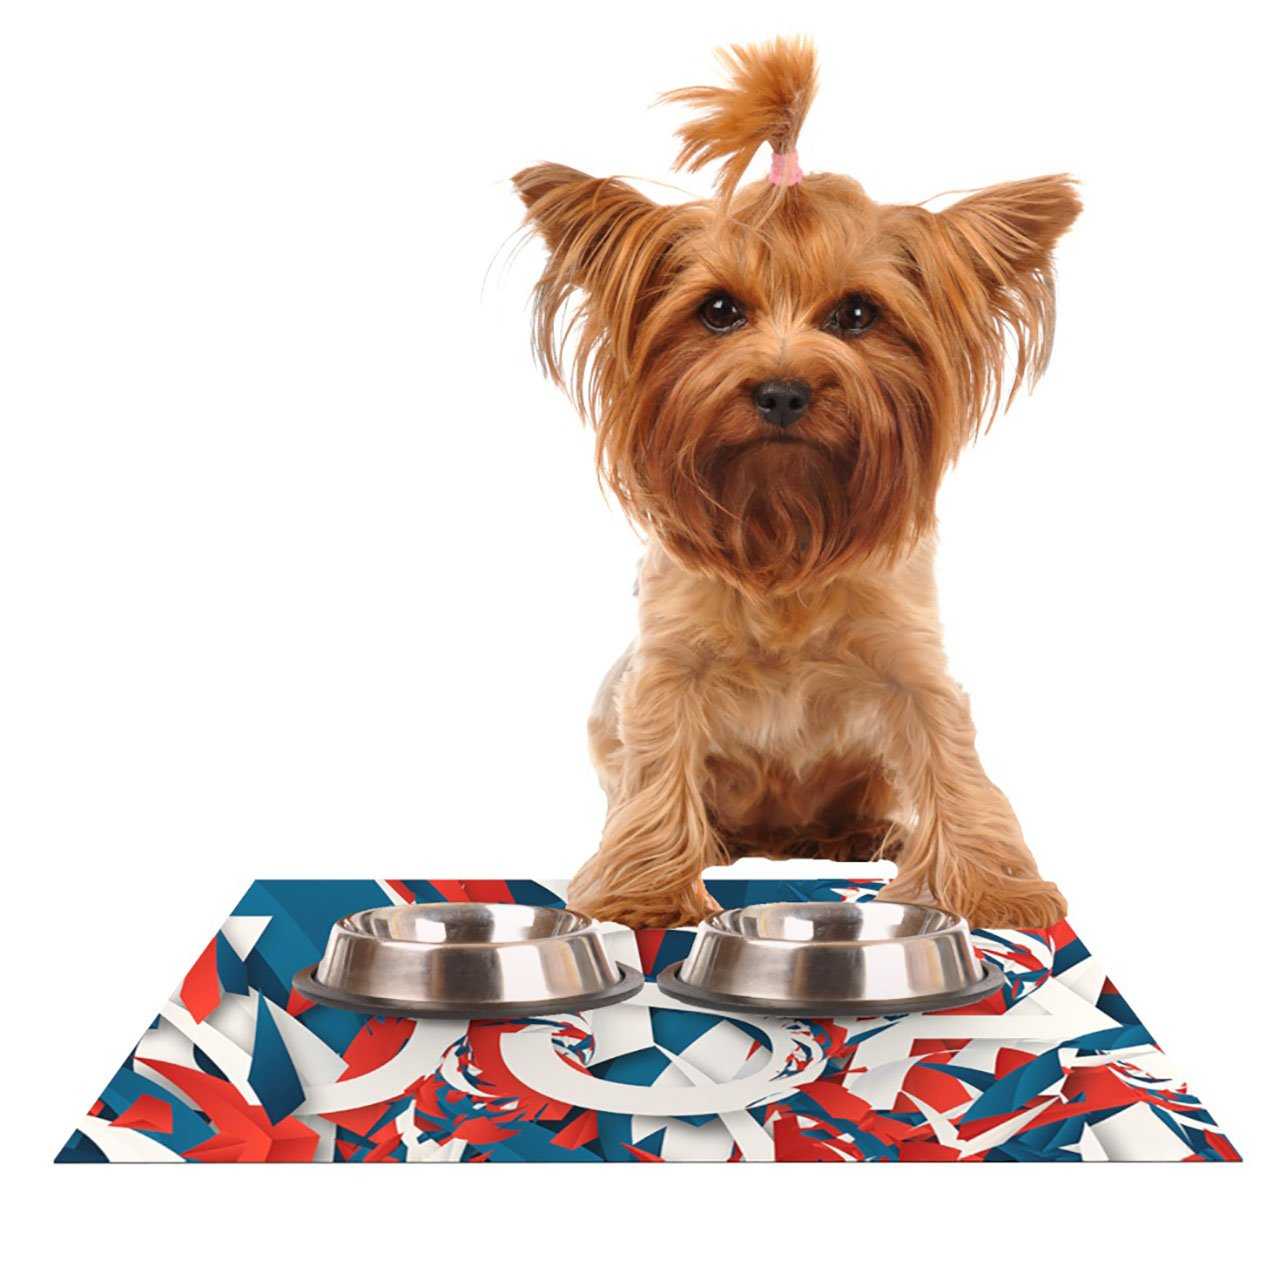 Kess InHouse Danny Ivan USA  World Cup Pet Bowl Placemat, 18 by 13-Inch